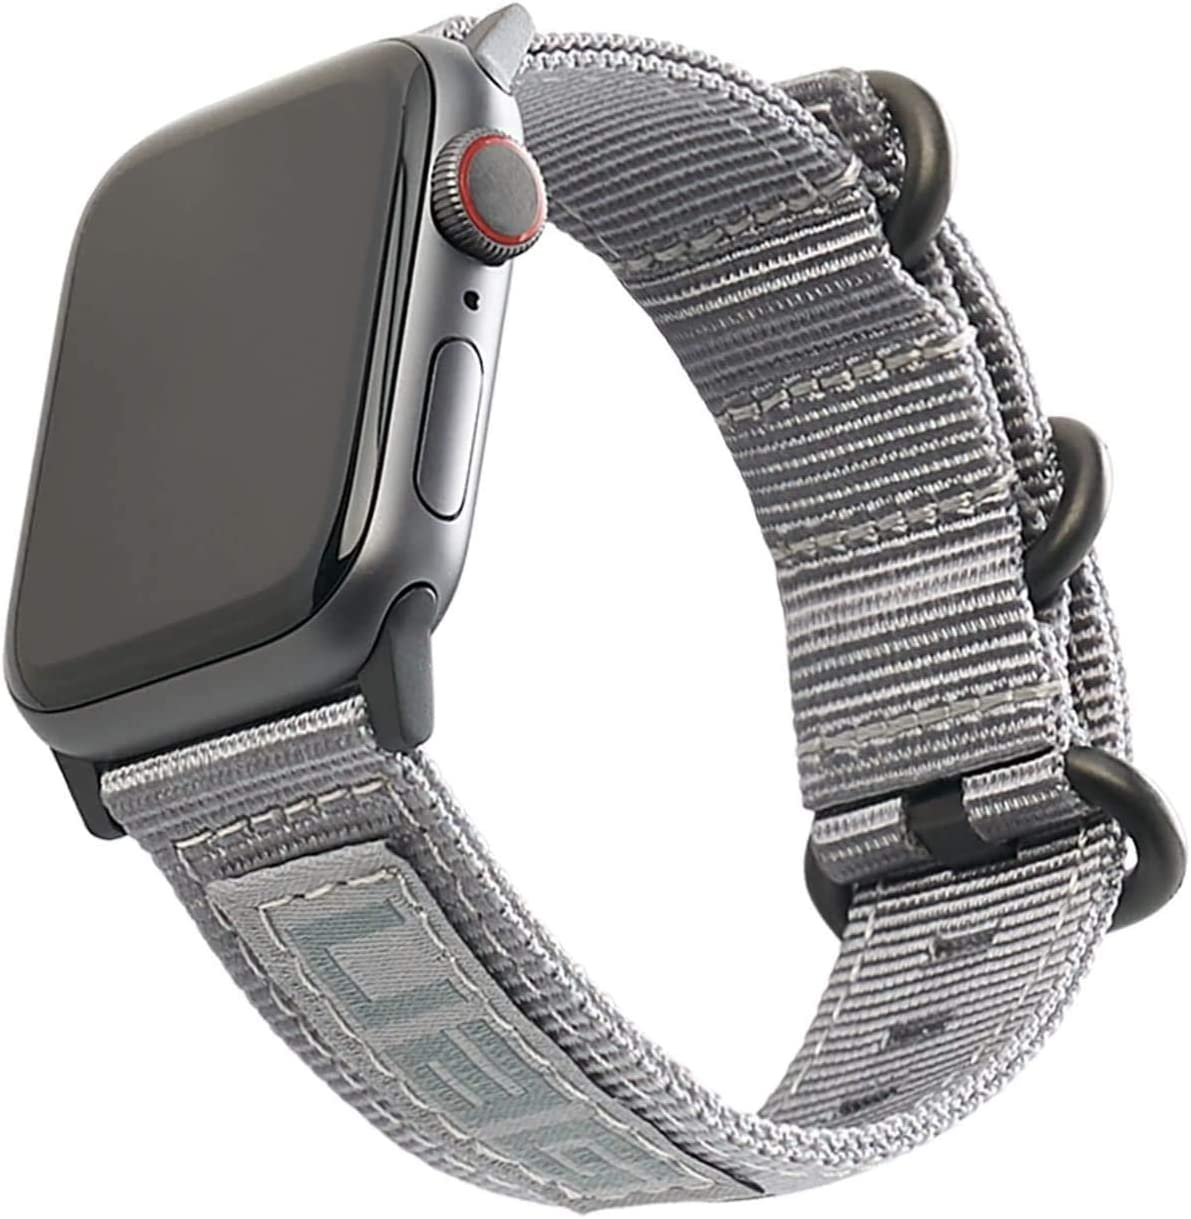 URBAN ARMOR GEAR UAG Compatible Apple Watch Band 40mm 38mm, iWatch Series 6/5/4/3/2/1 & Watch SE, High Strength Nylon Weave Replacement Strap, Nato Grey